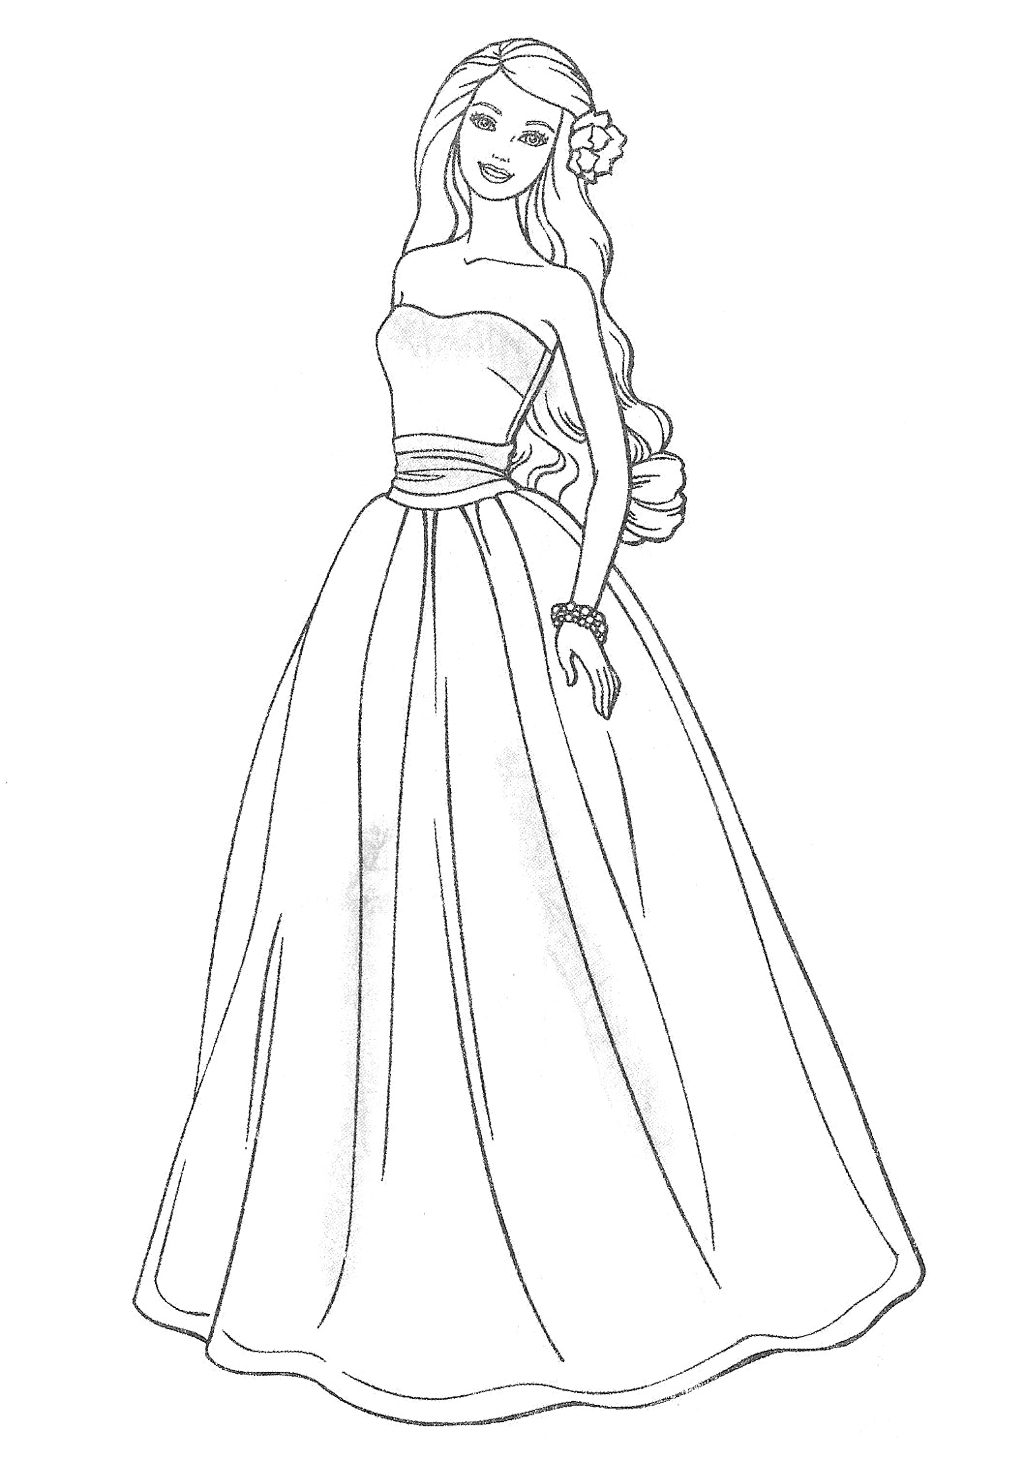 Drawn barbie gown wallpaper Pages Party Pages for